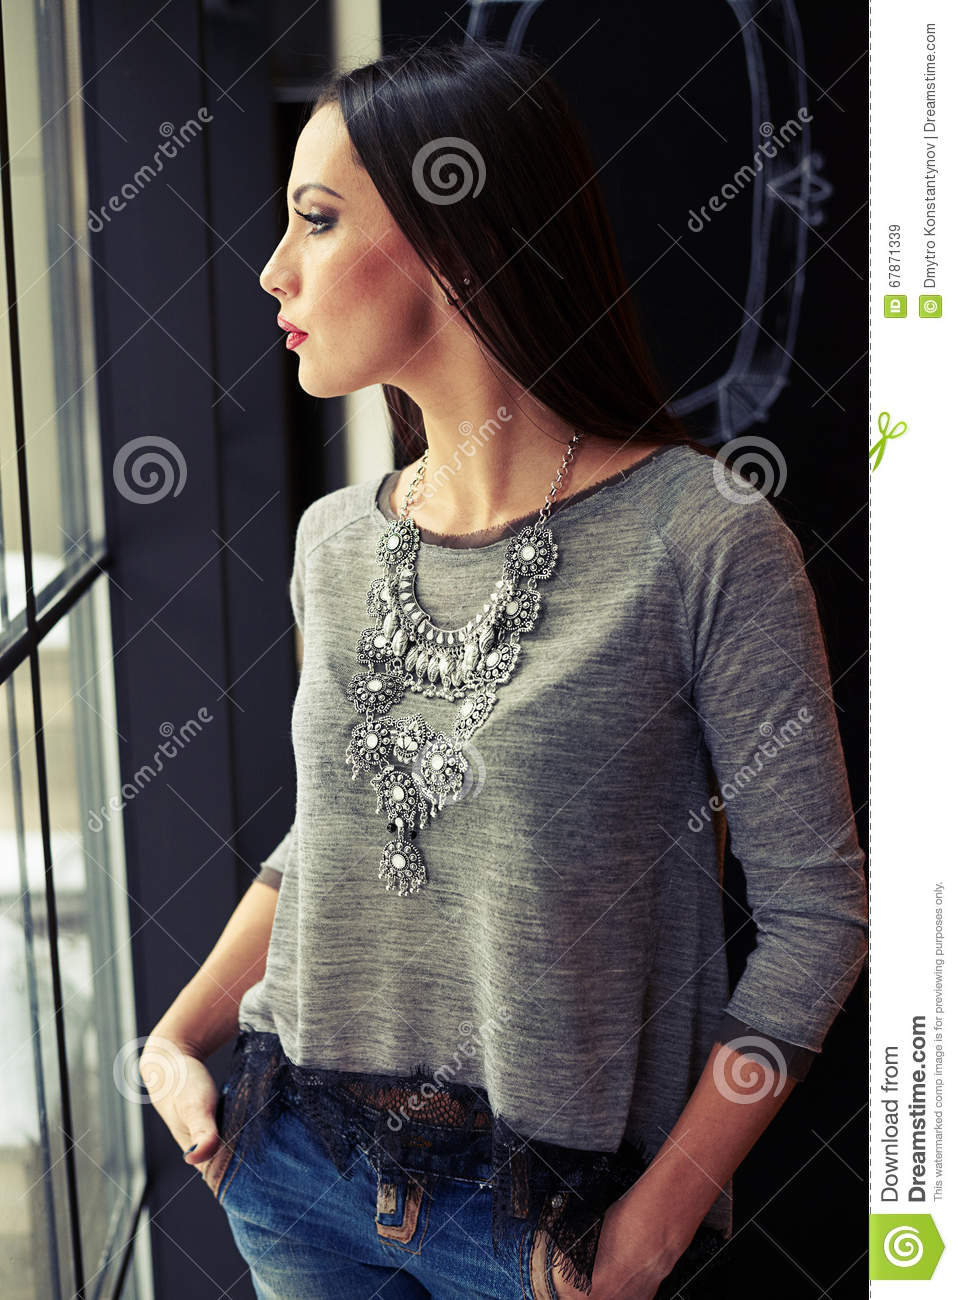 Woman looking to the window